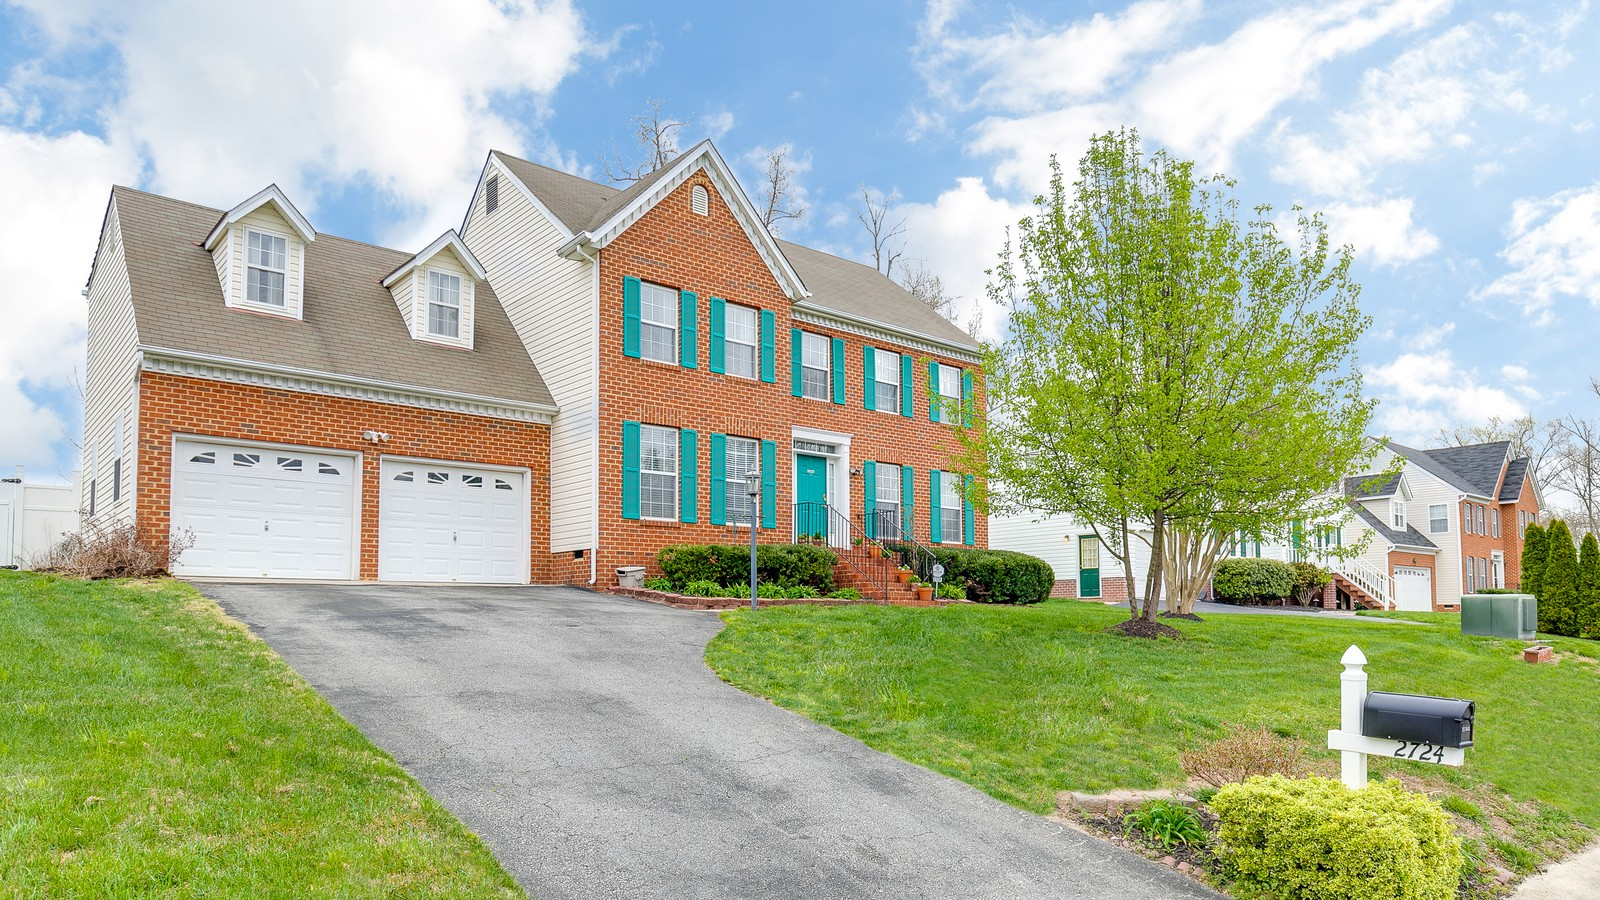 Villa per Vendita alle ore 2724 Kentwood Forest Court, Chester 2724 Kentwood Forest Ct Chester, Virginia, 23831 Stati Uniti